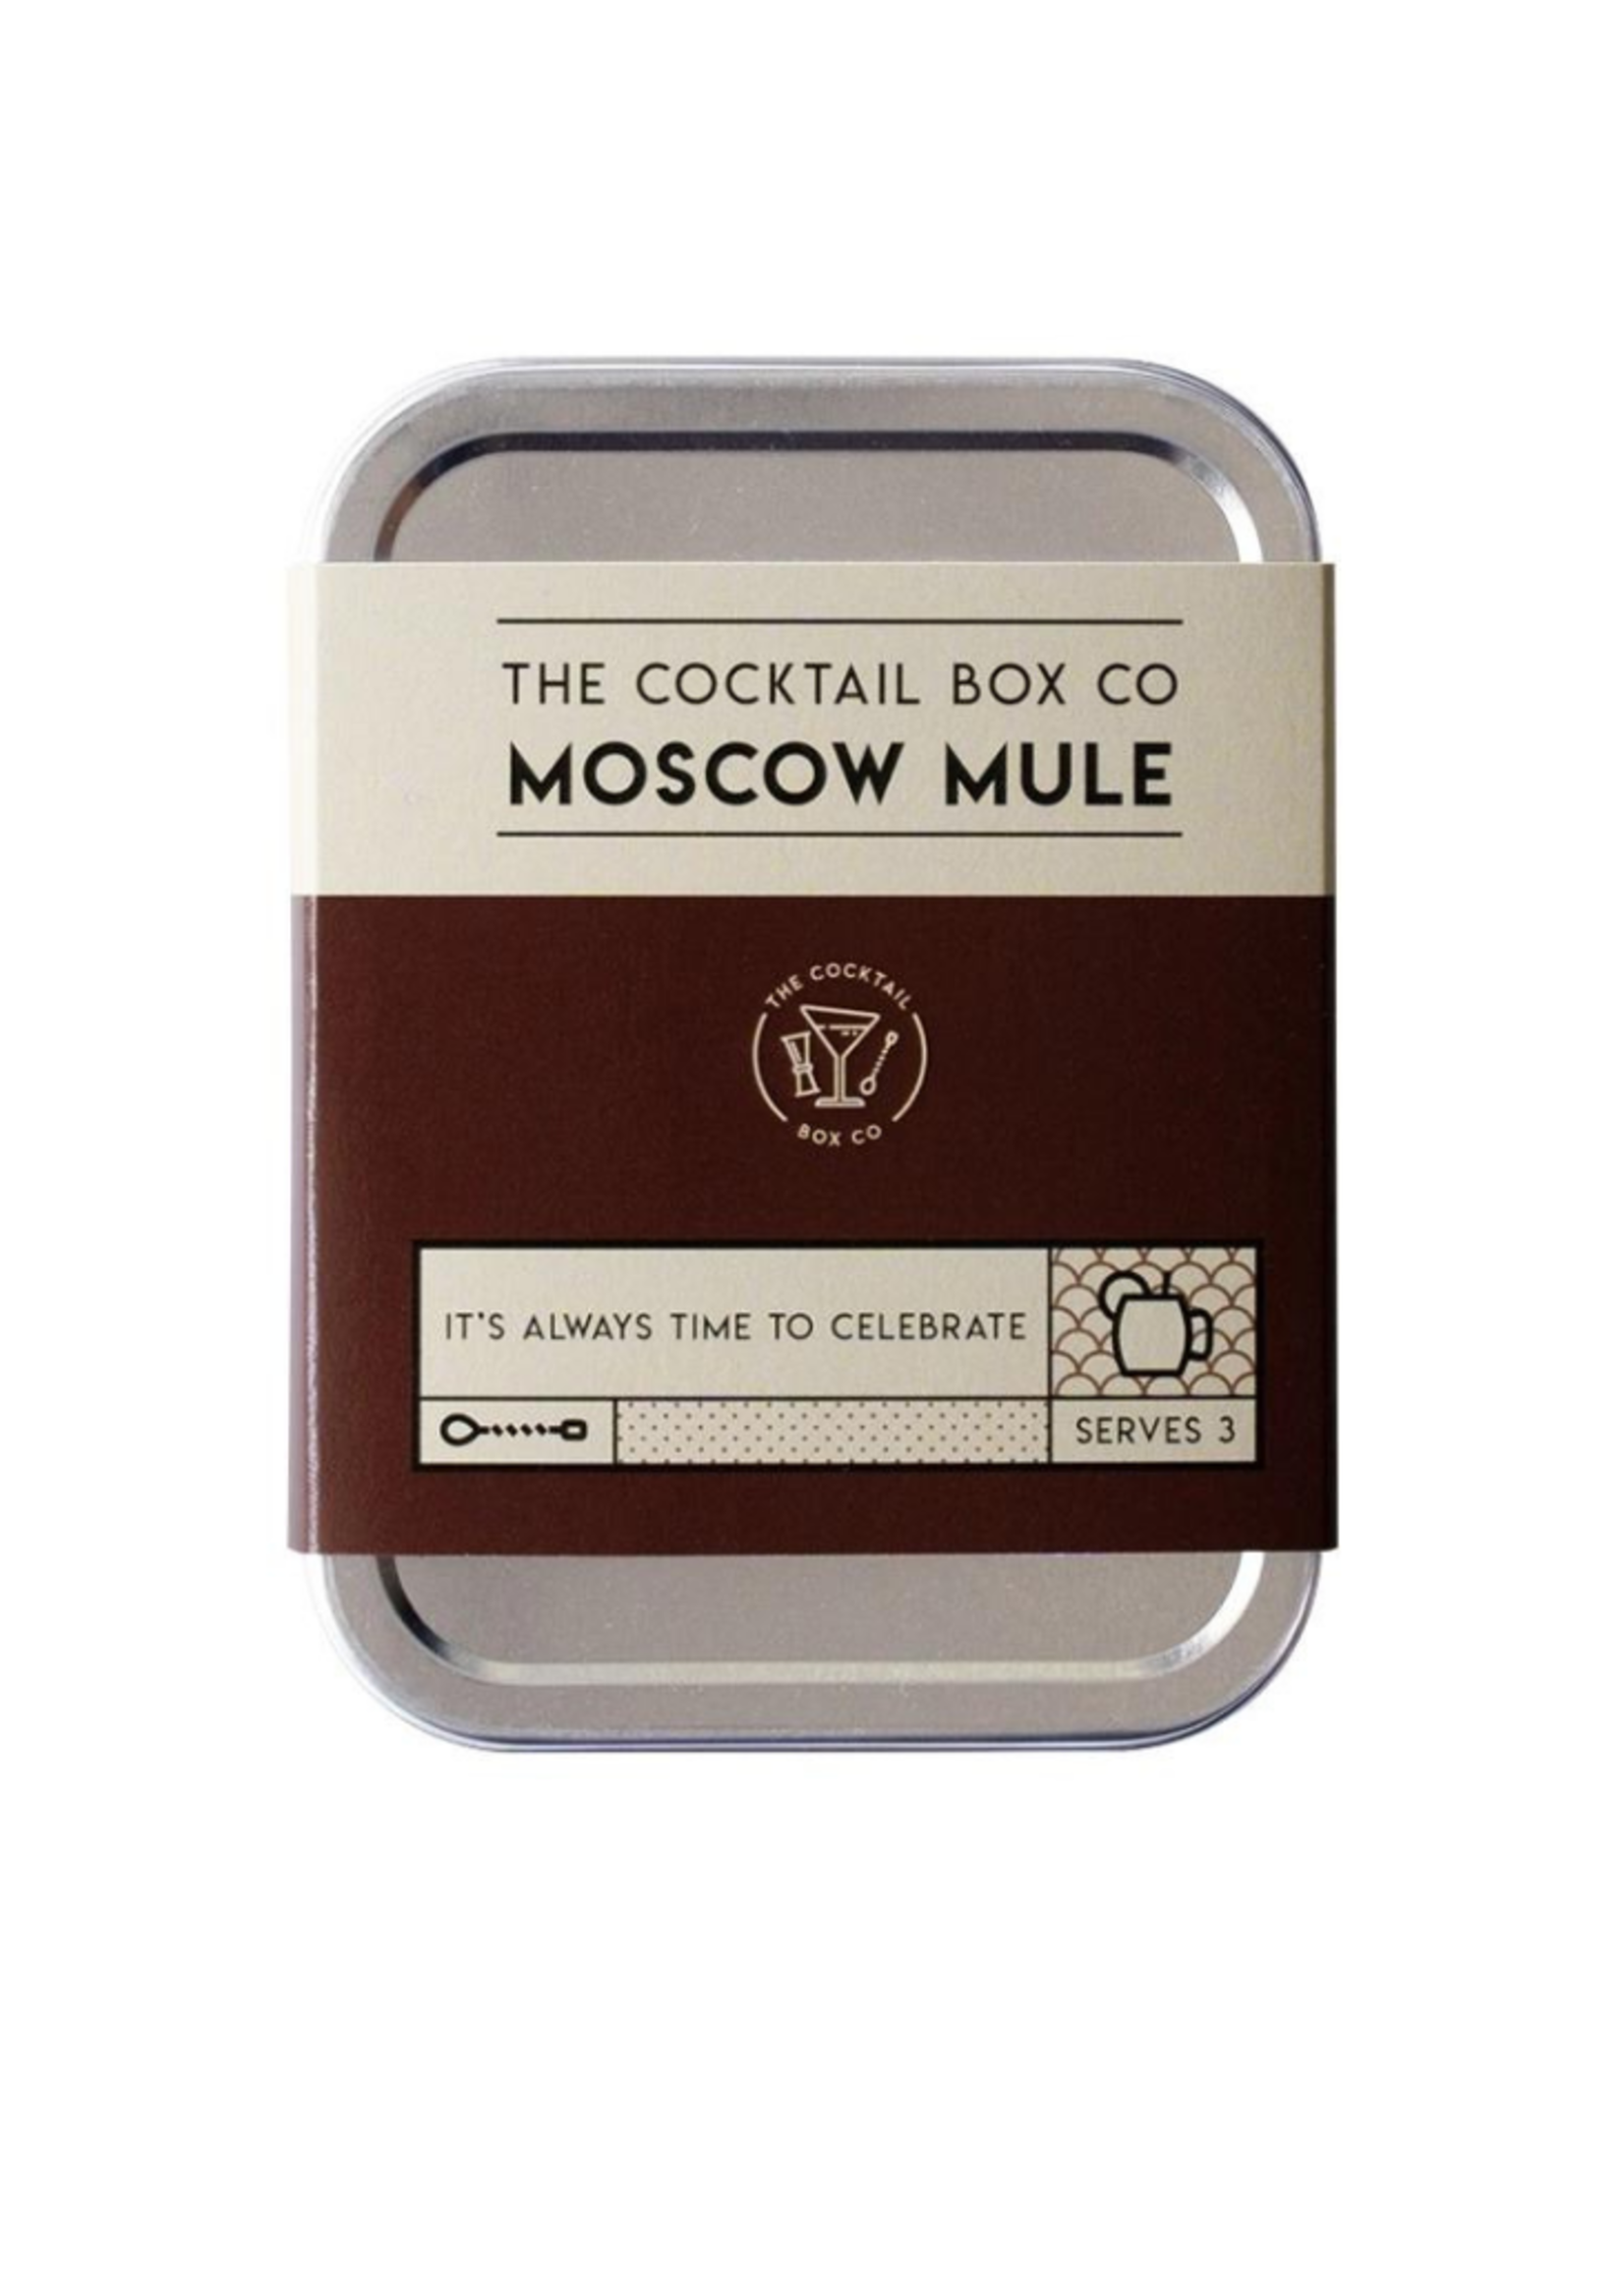 The Cocktail Box Co. The Moscow Mule Cocktail Kit